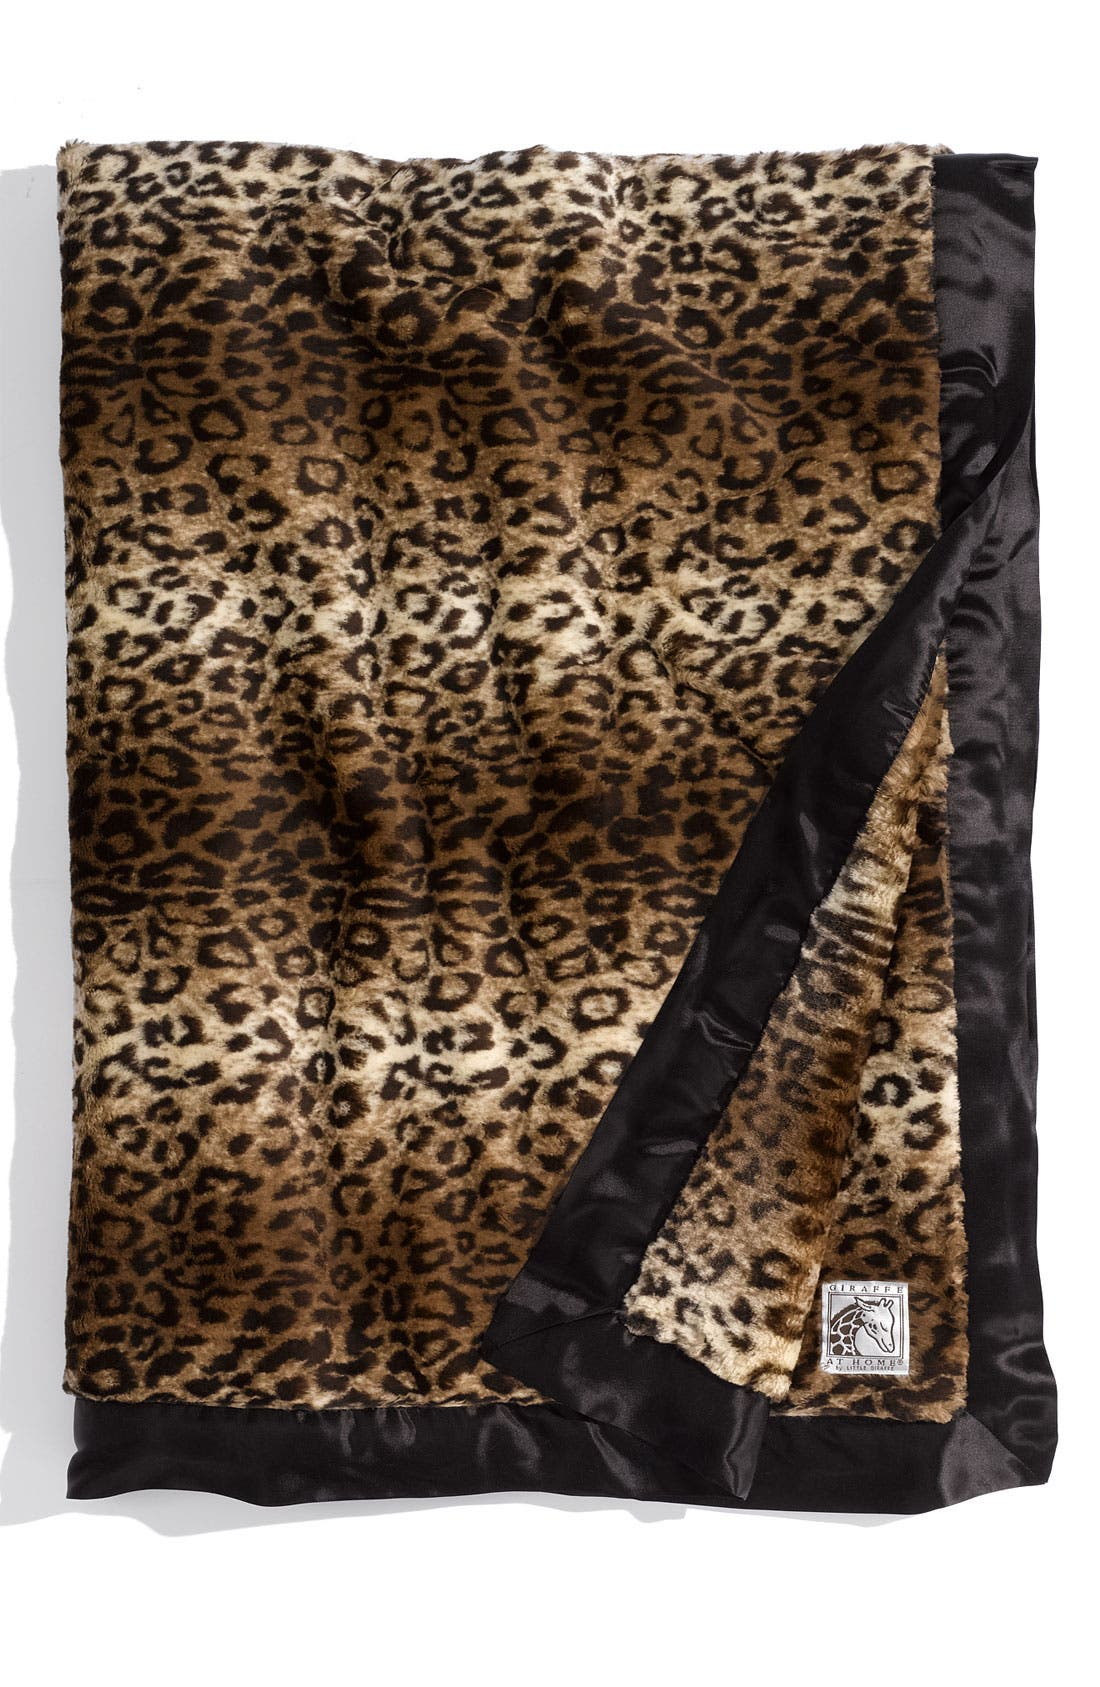 Main Image - Giraffe at Home 'Luxe™ Leopard' Throw